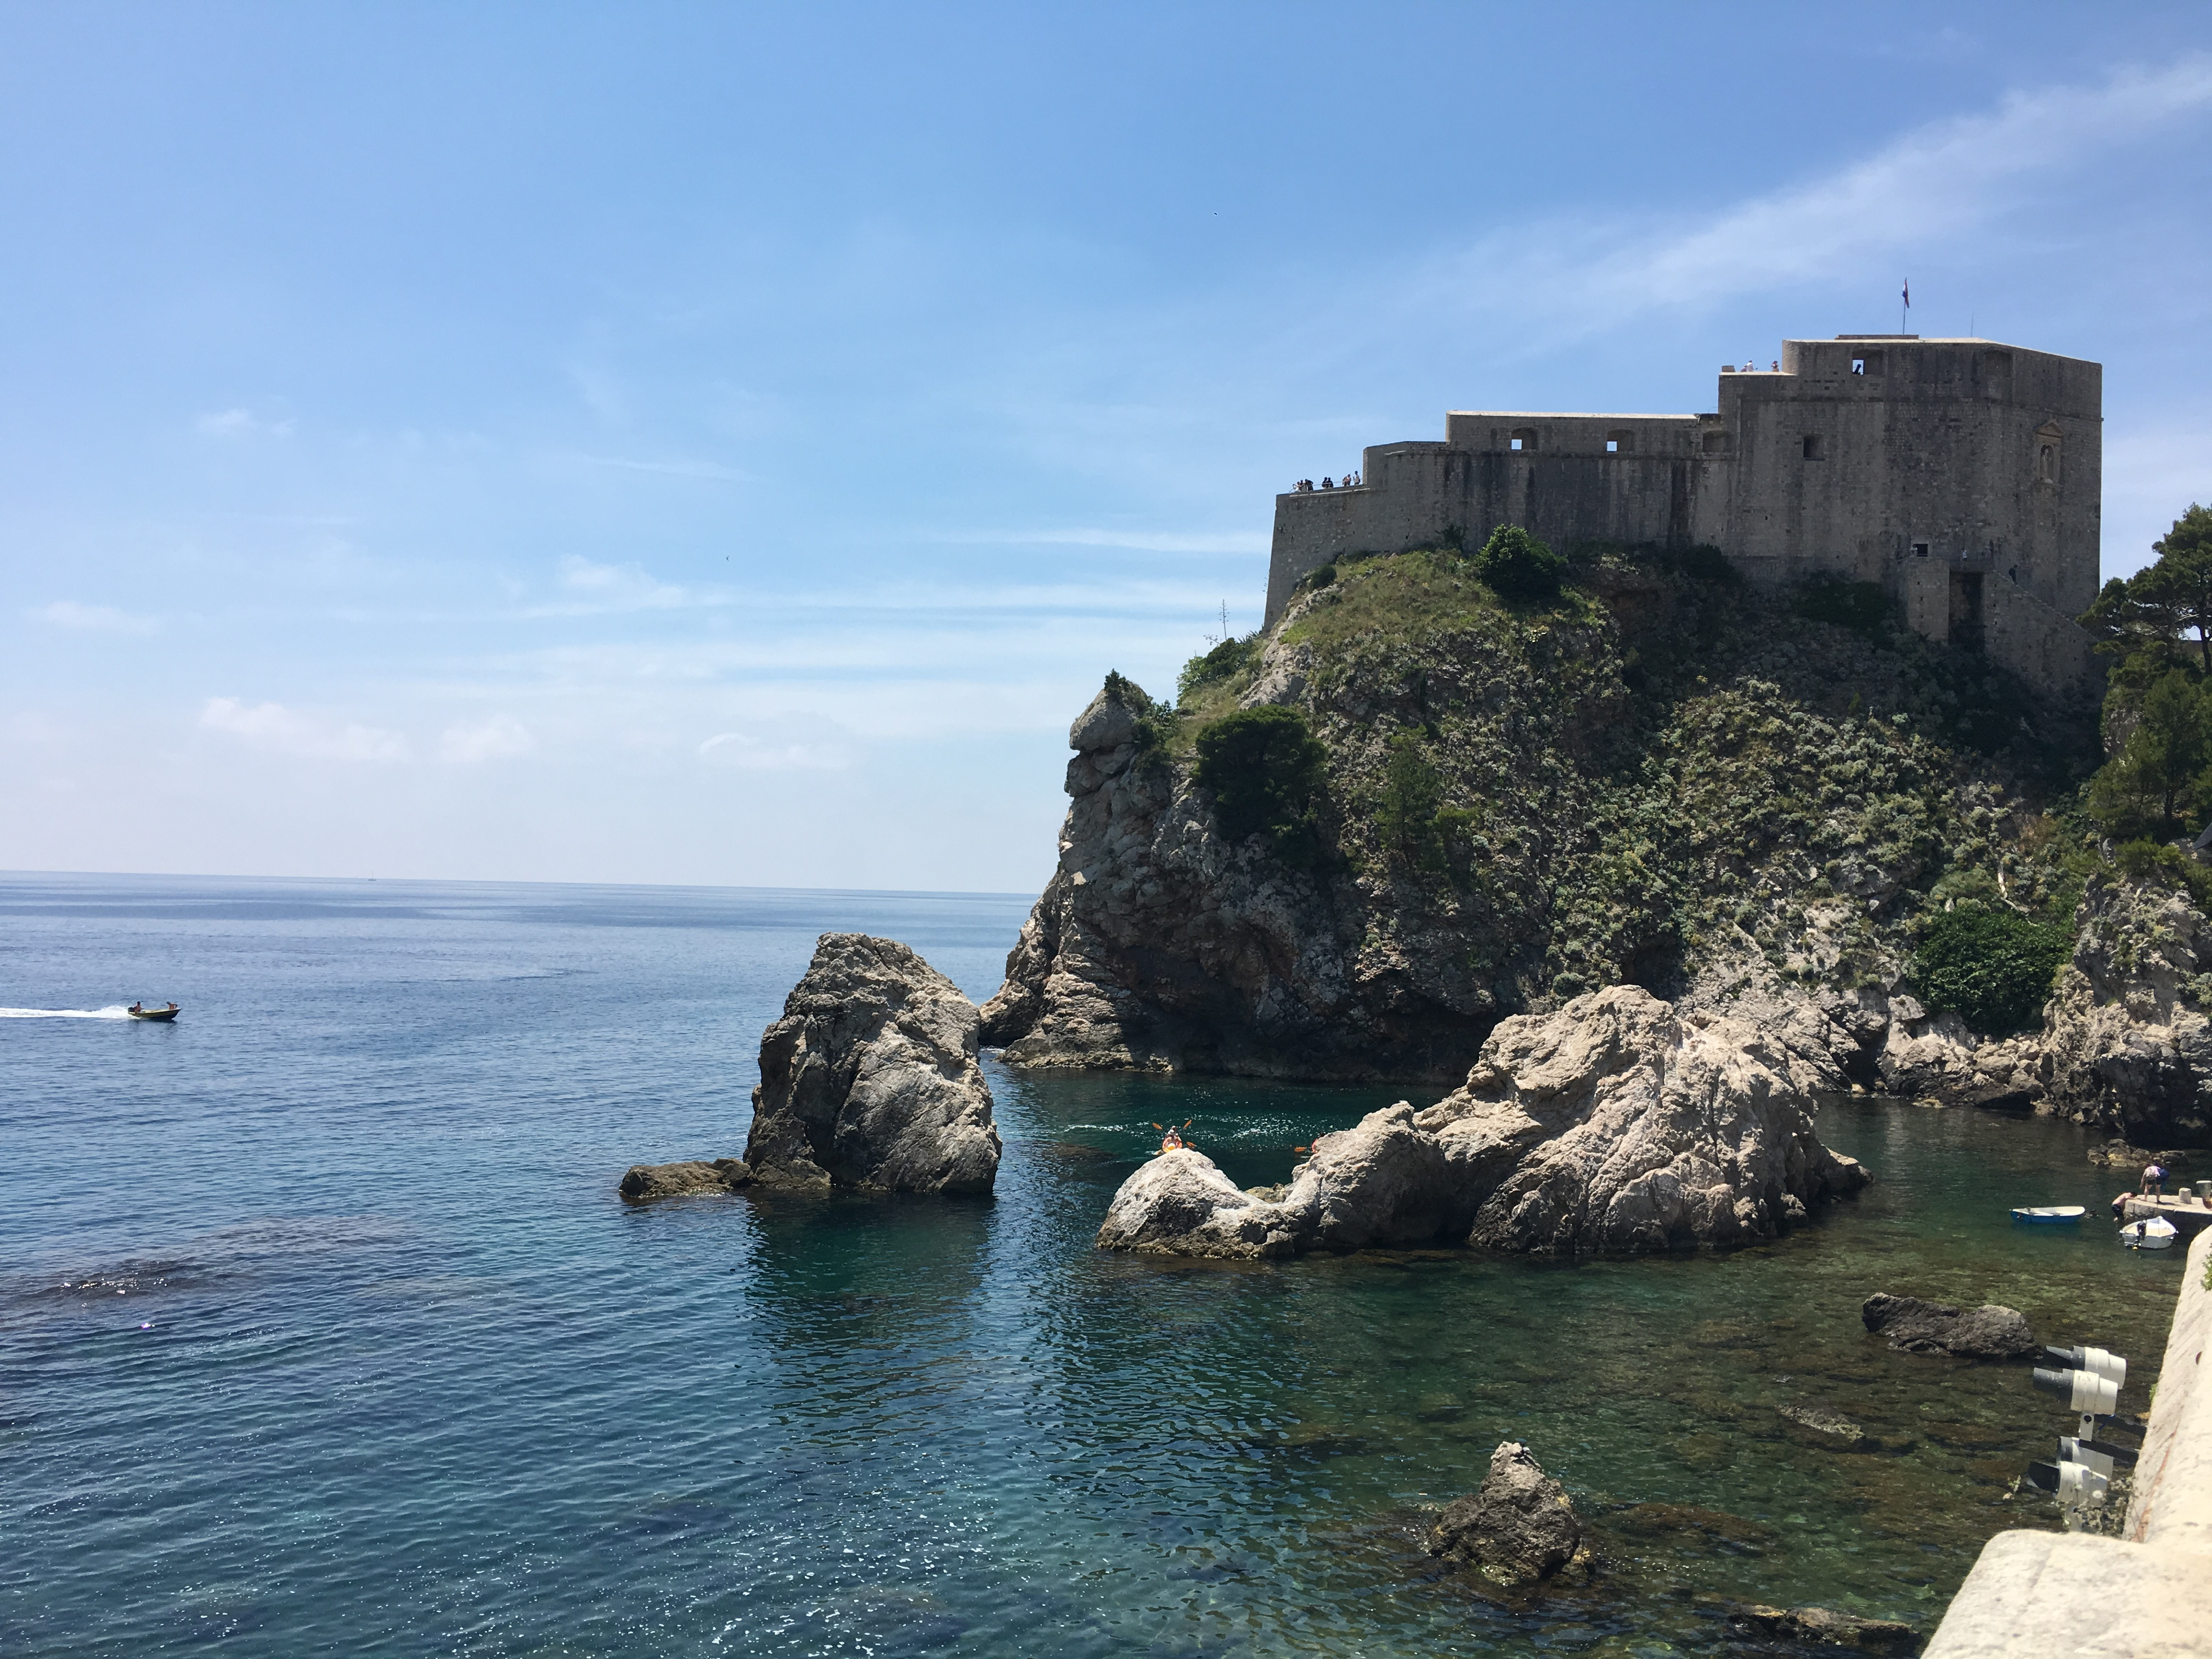 red-keep-kings-landing-game-of-thrones-croatia-dubrovnik